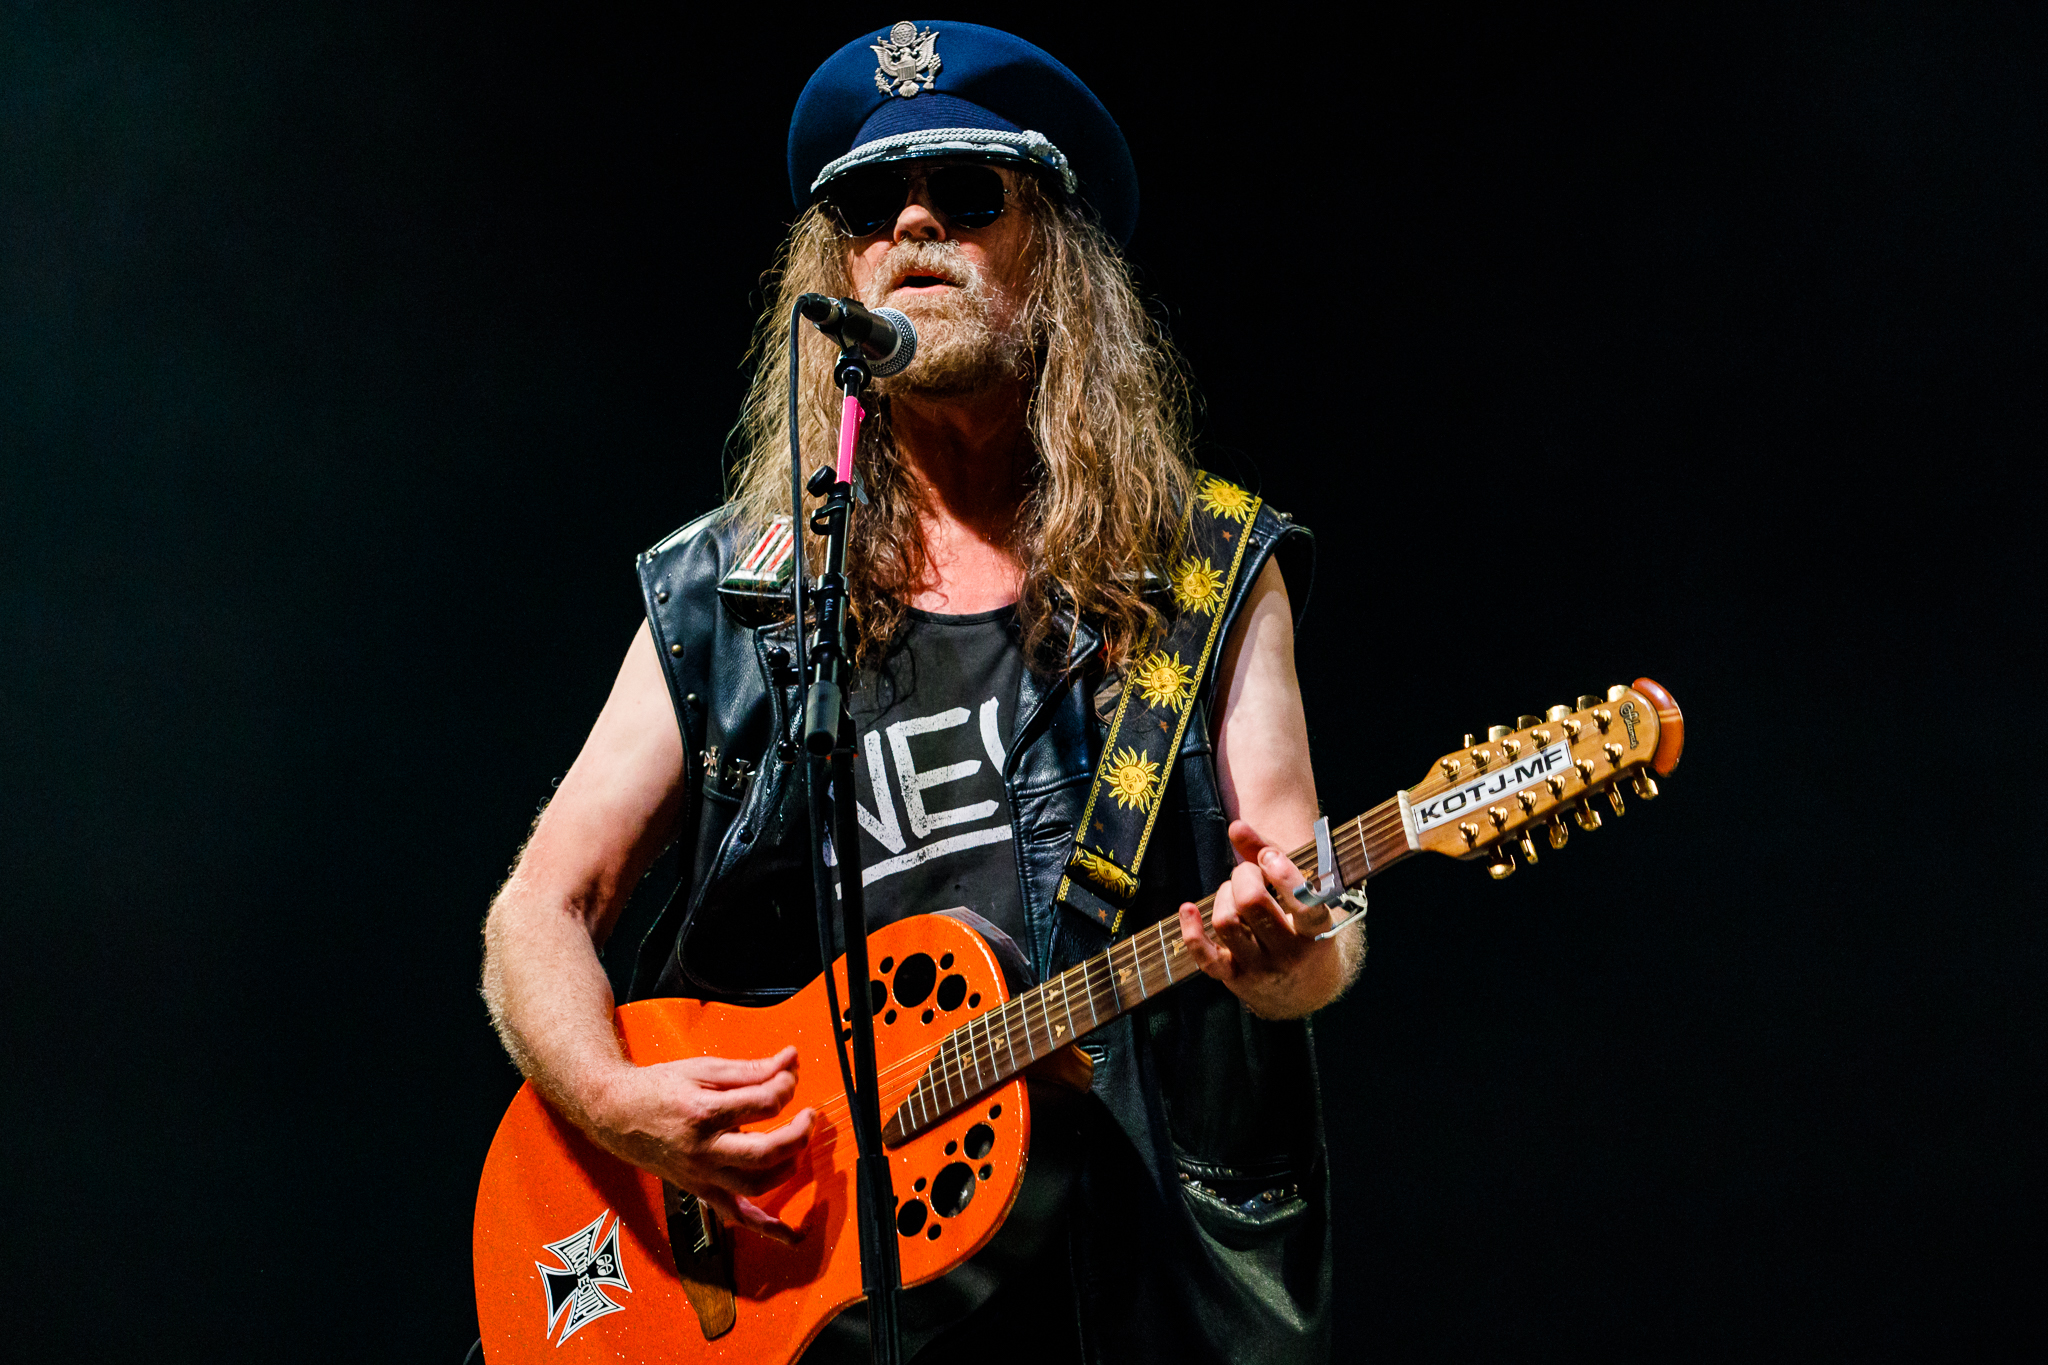 Julian Cope @ Green Man Festival (Brecon Beacons, Wales)